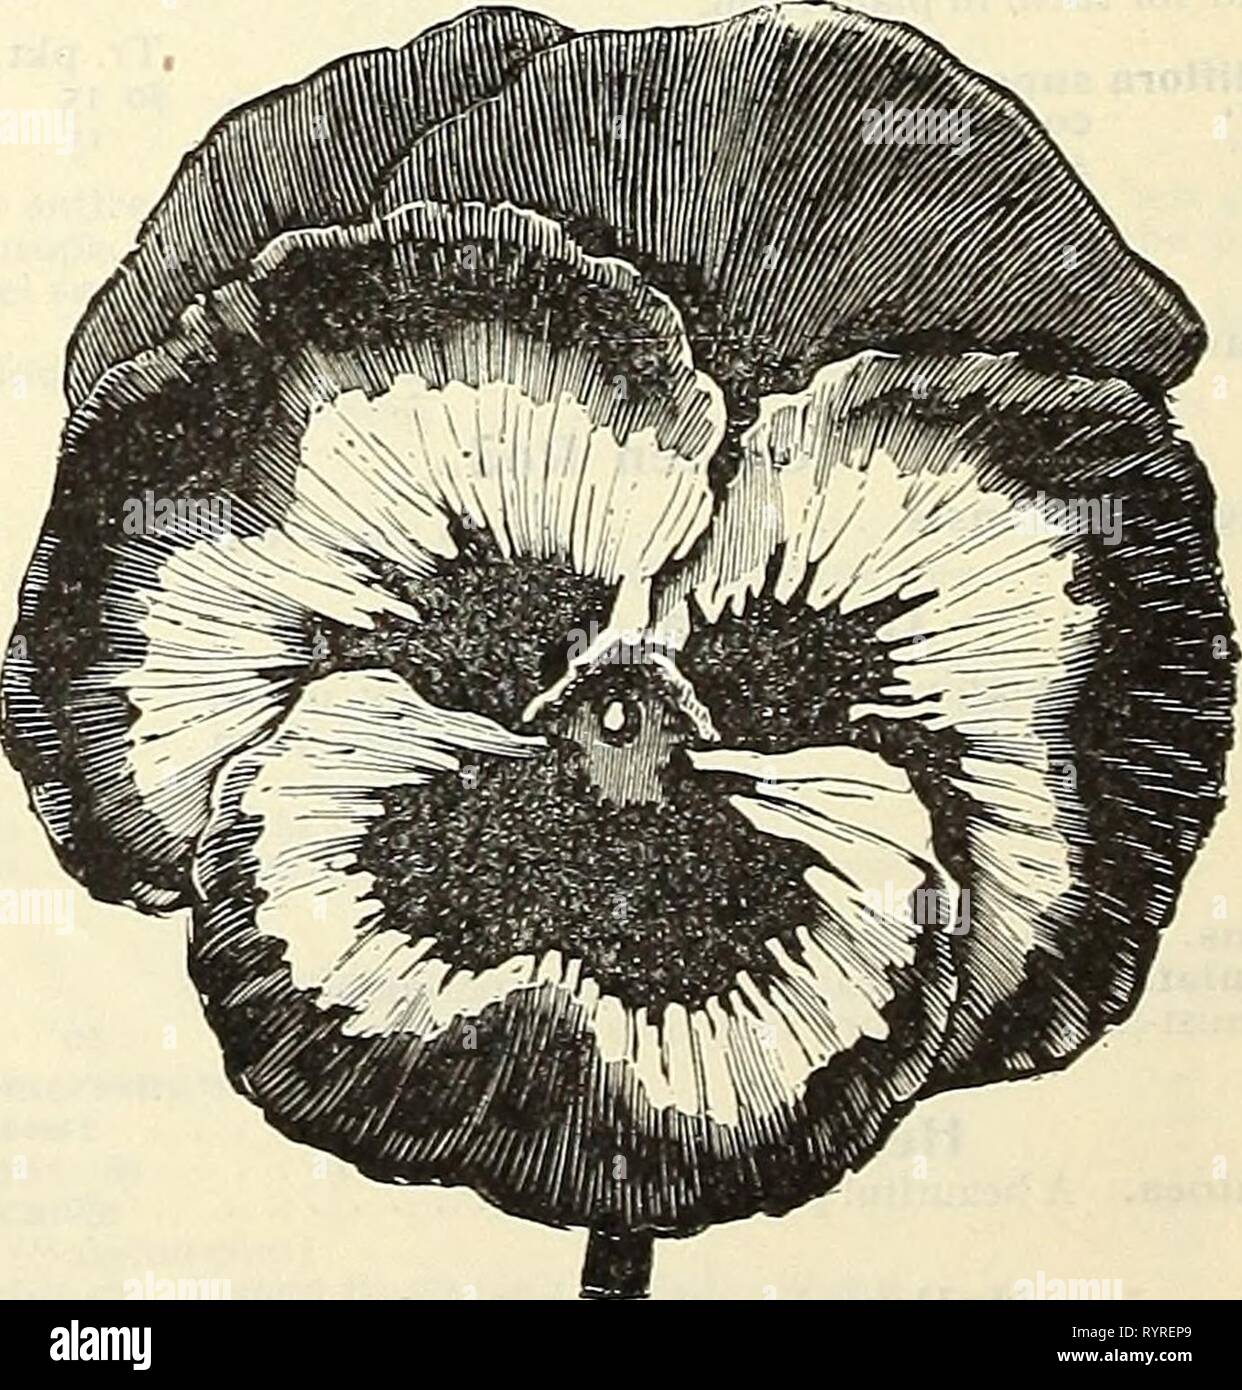 Dreer's wholesale price list  Dreer's wholesale price list : summer edition 1903 July to August plants bulbs seasonable flower and vegetable seeds, fertilizers, tools, etc., etc . dreerswholesalep1903henr_1 Year: 1903  KUGNOT S SUPERB BLOTCHED PANSY. Phlox Decussata. The hard' perennial Phlox, saved from our own splendid collec- tion. Finest mixed. 25 cts. per tr. pkt.; S'-oo per oz. Physalis. Tr.pkt. Oz. Francheti (Chinese Lantern Plant) So 15 So 50 Platycodon (Chinese Bellflower or Balloon Flower.) Tr. pkt. Oz. Japonicus, fl. pi. Double blue • . . . . So 10 So 25 Mariesi. Dwarf blue 10 30 G - Stock Image